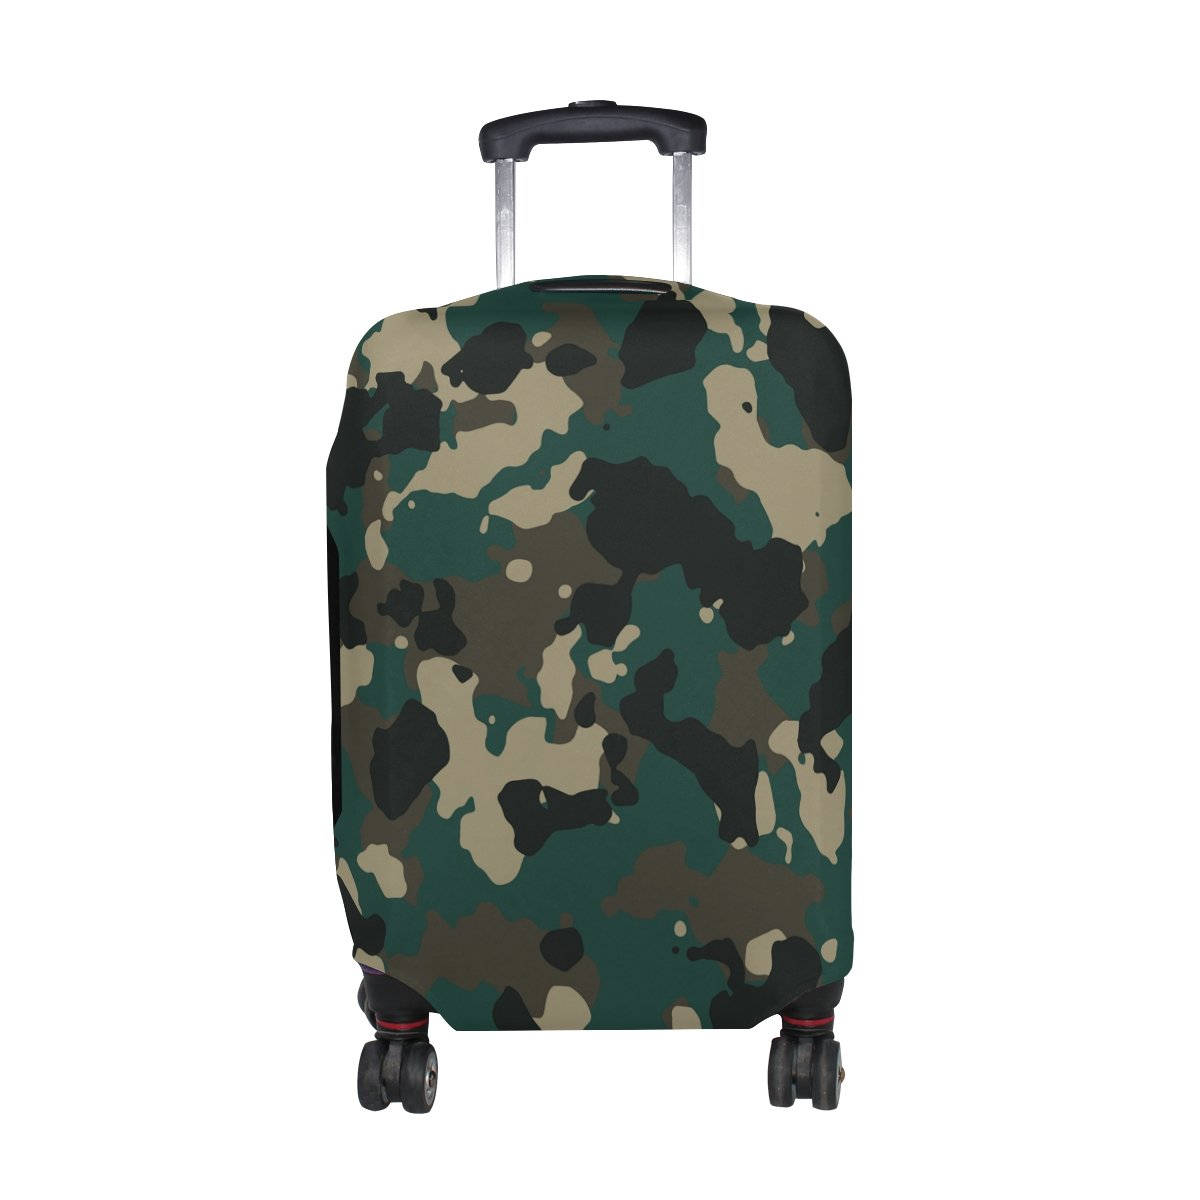 Military Camo Camouflage Pattern Print Travel Luggage Protector Baggage Suitcase Cover Fits 29-32 Inch Luggage